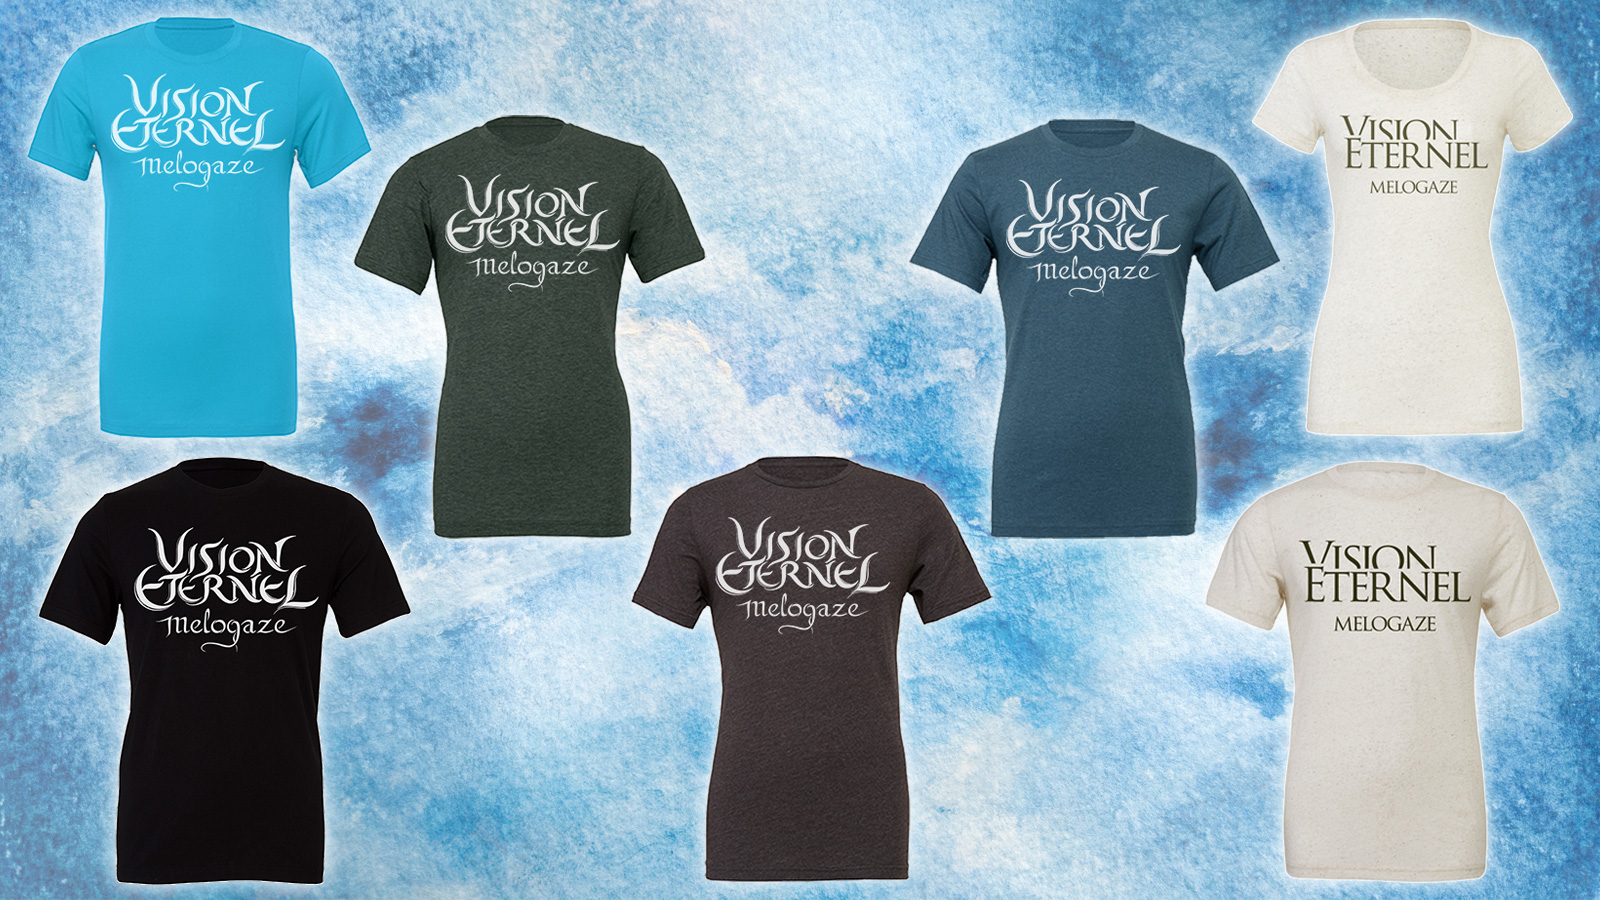 Vision Éternel T-Shirts And Stickers Are Available